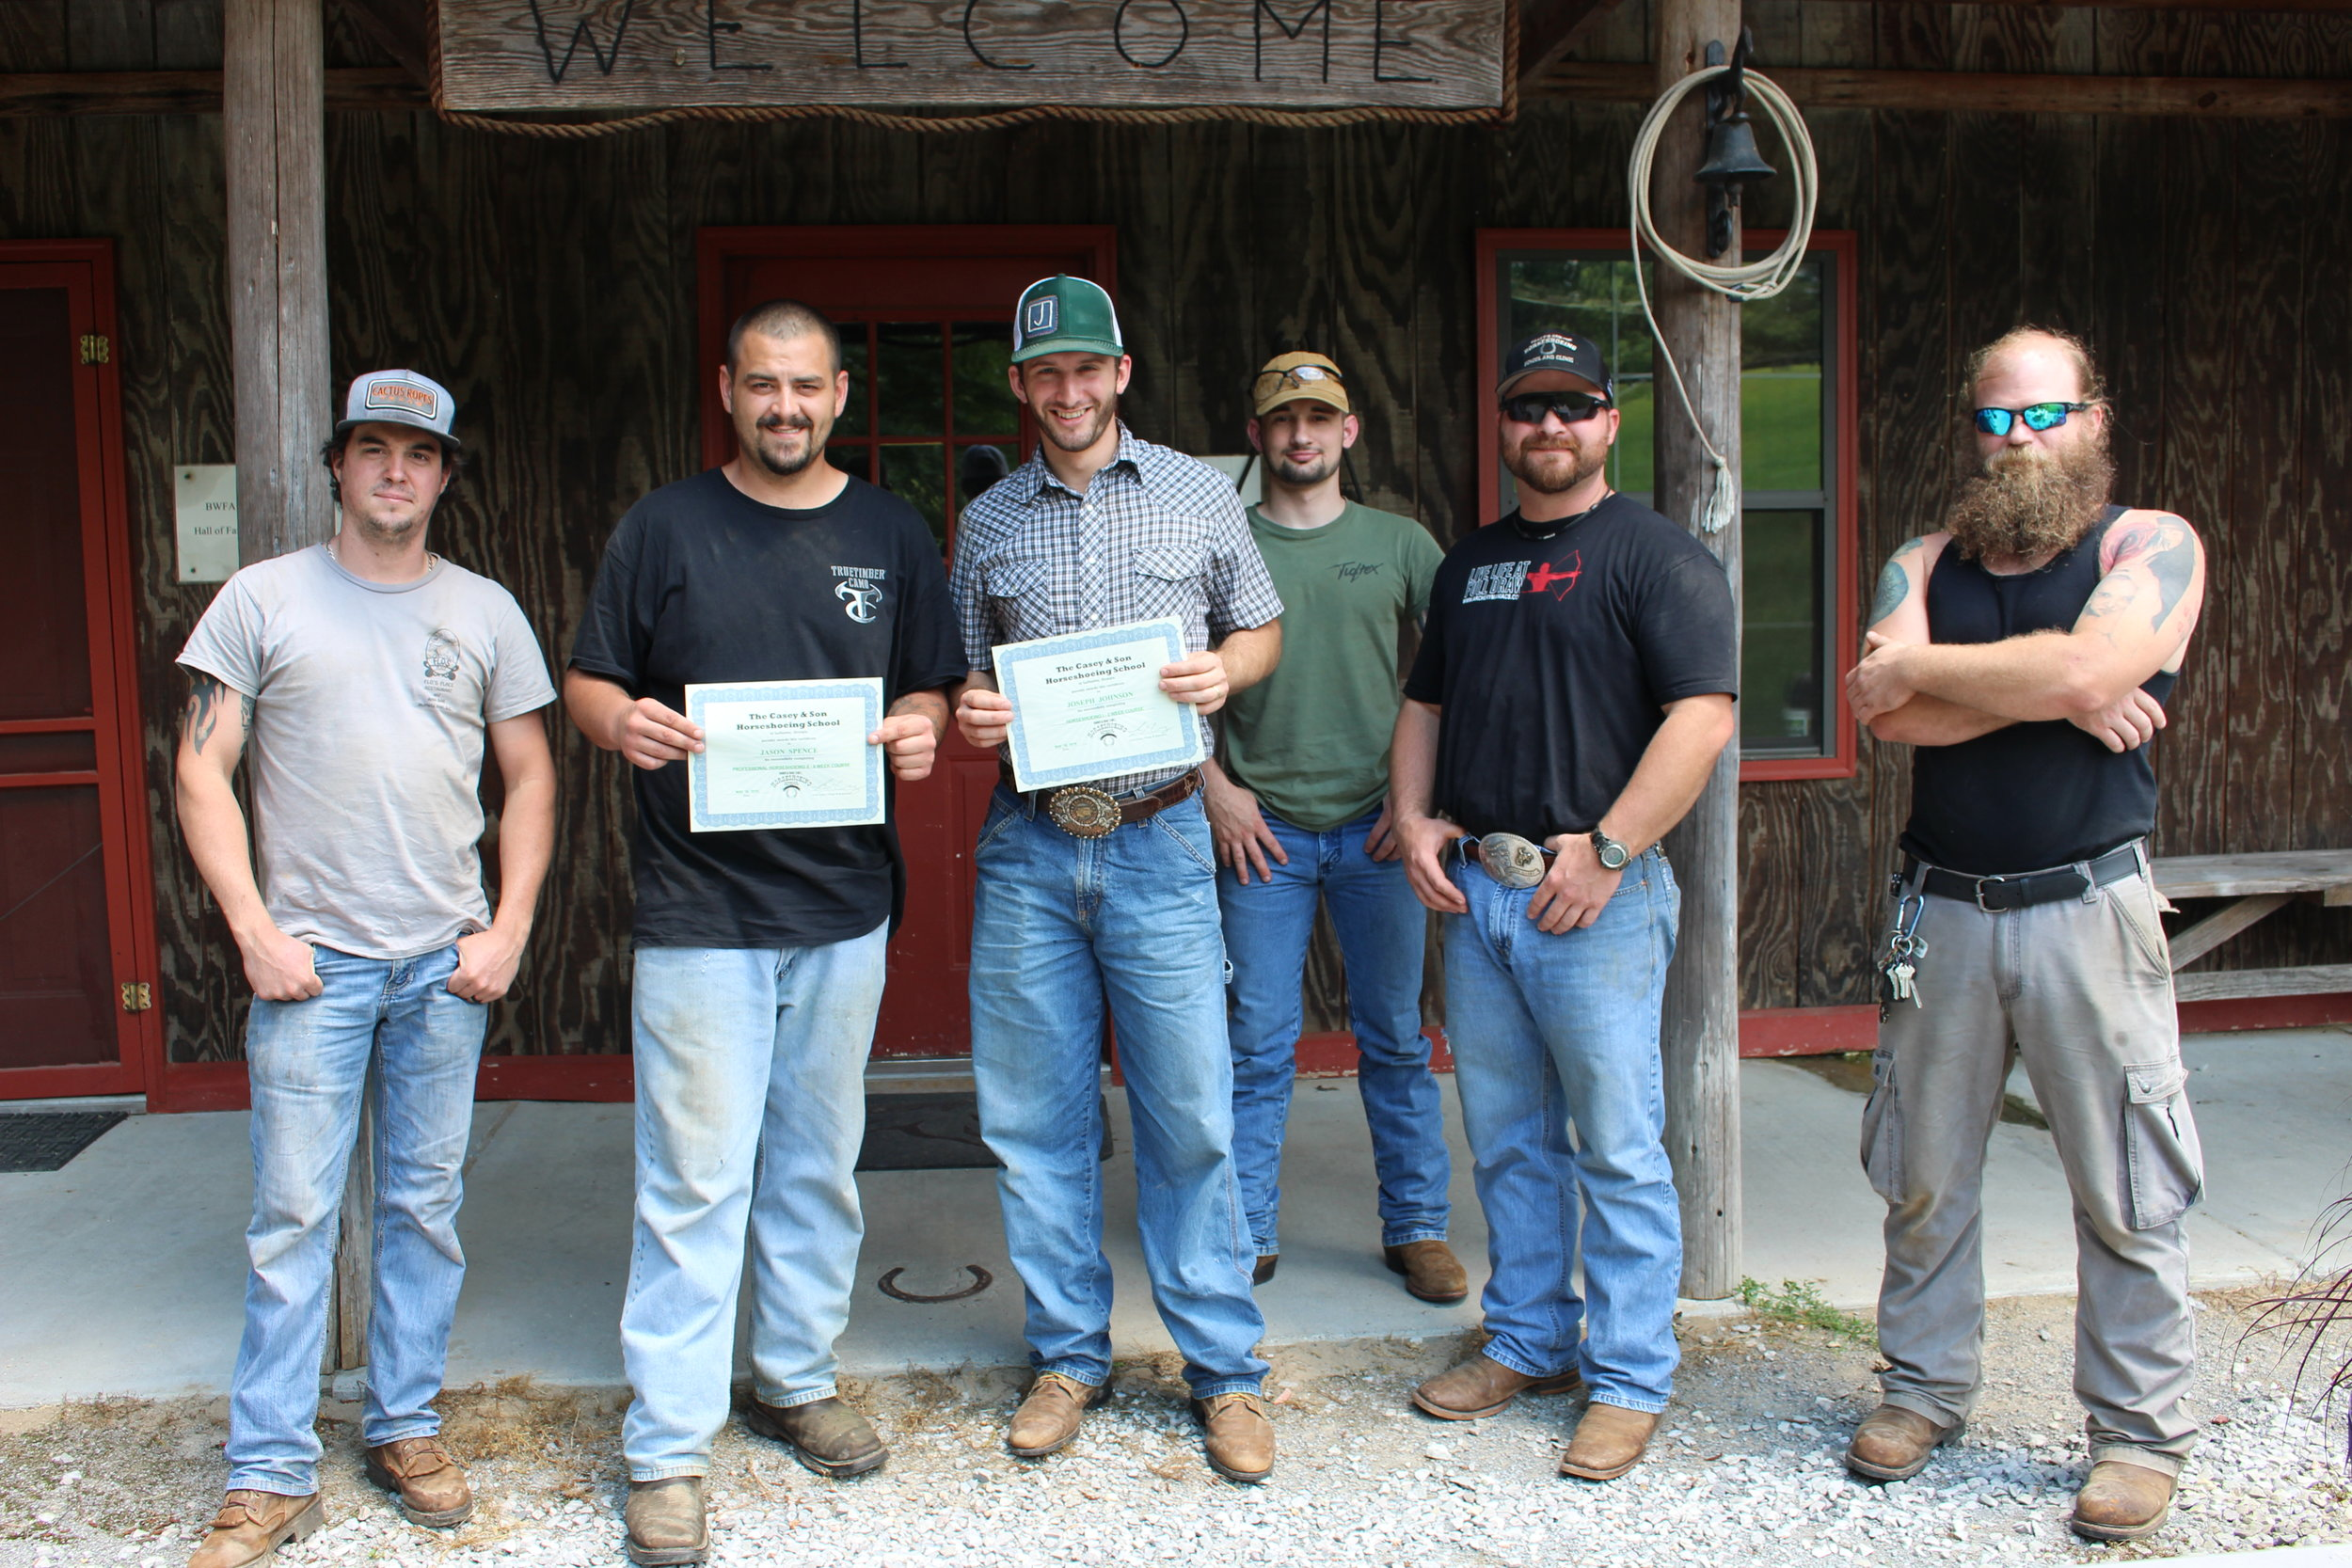 Jason Spence & Joseph Johnson Graduation Photo with future graduates and Link Casey, Owner & Instructor